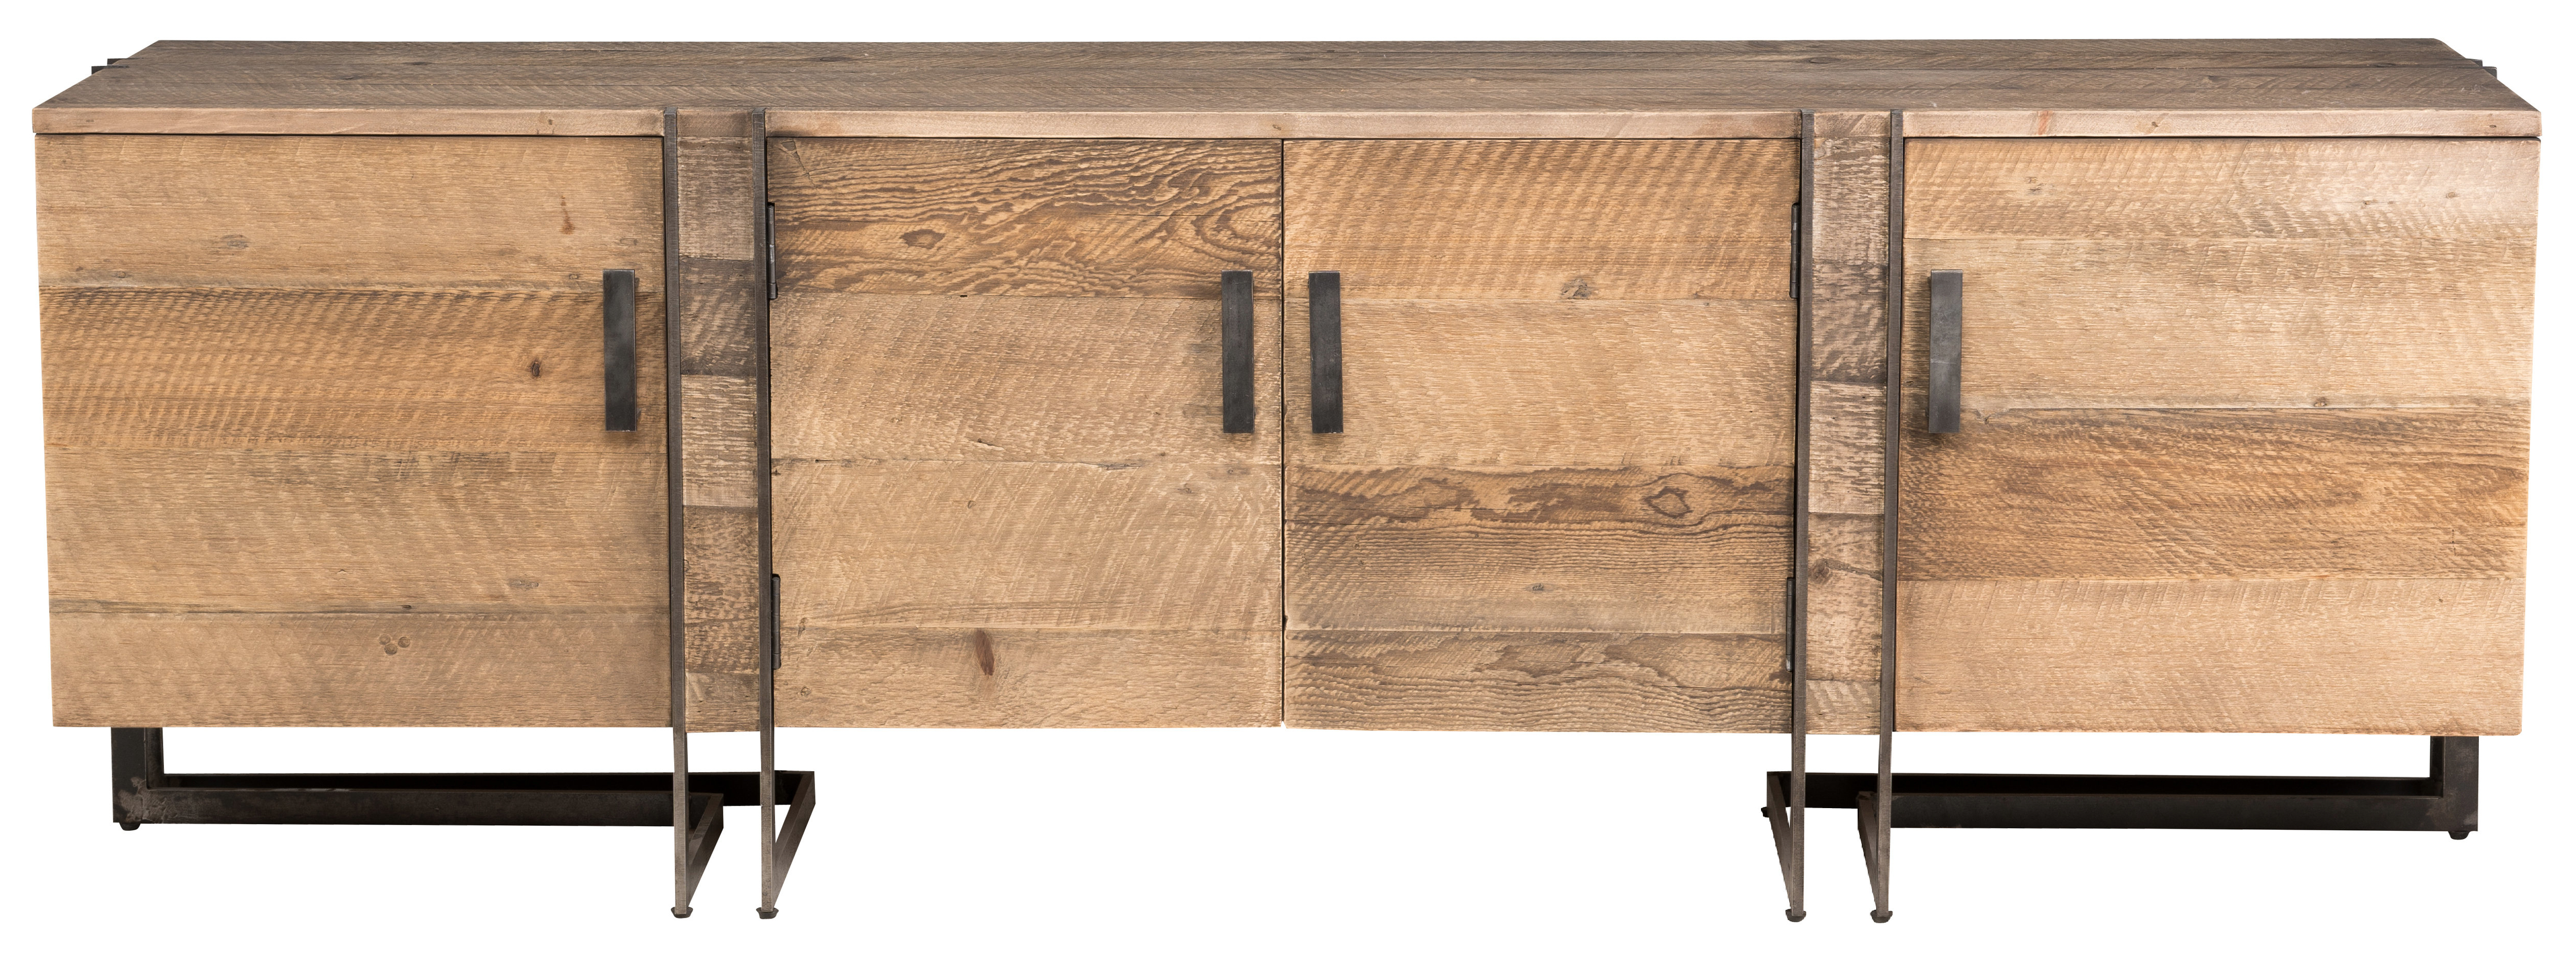 Industrial Tv Stands | Joss & Main With Regard To Walton 74 Inch Open Tv Stands (View 14 of 20)